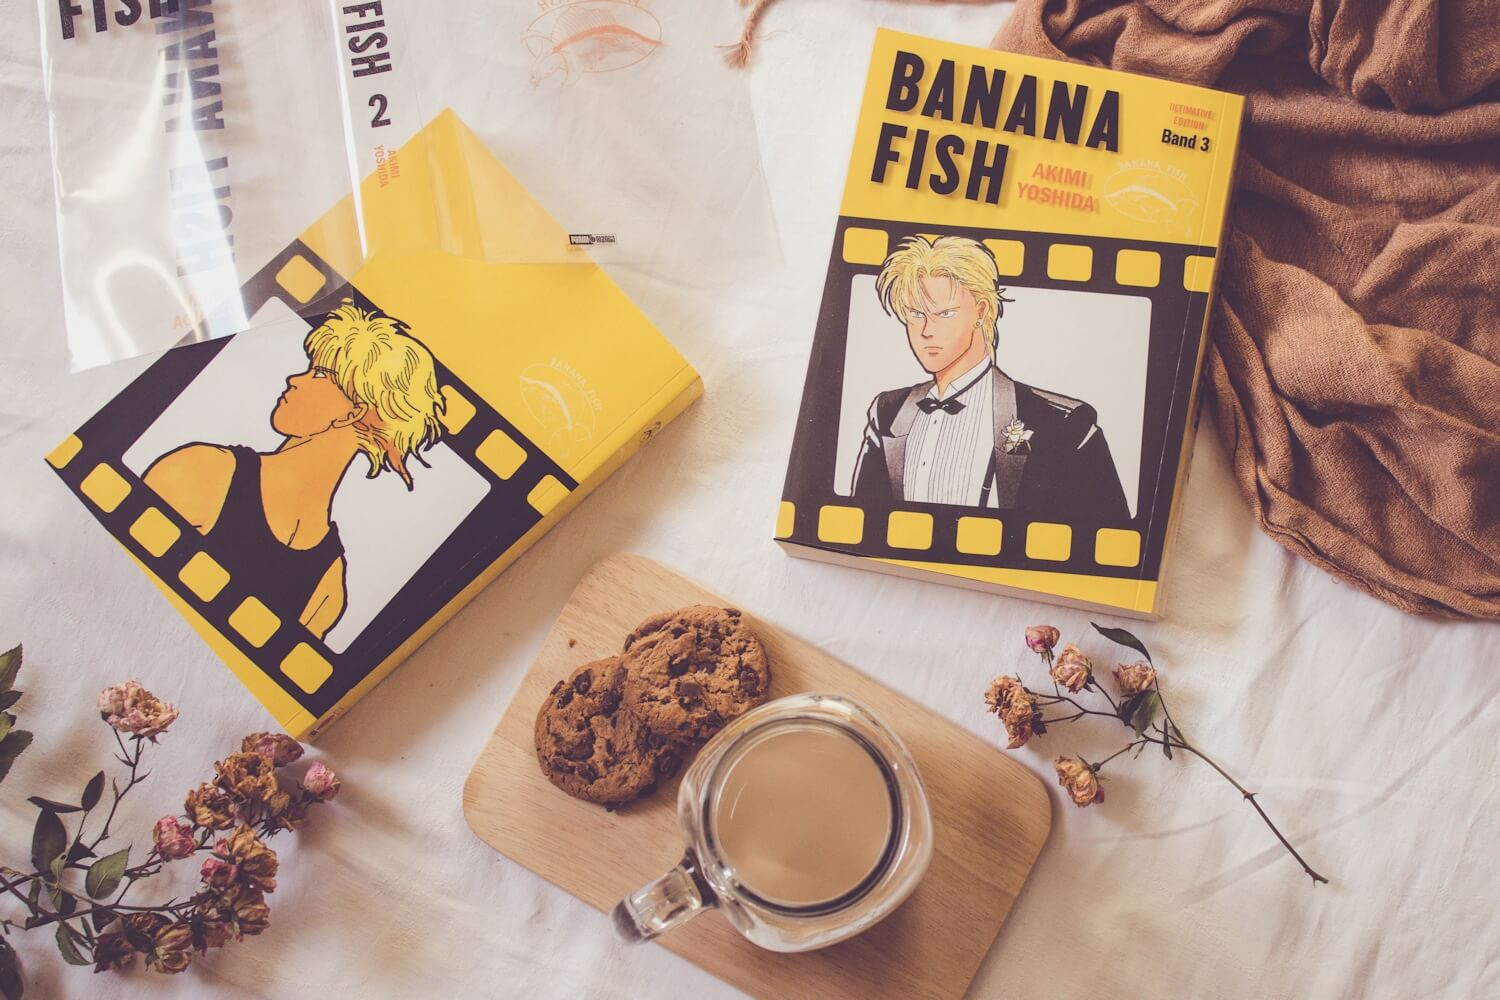 Banana Fish Rezension Band 2 und 3